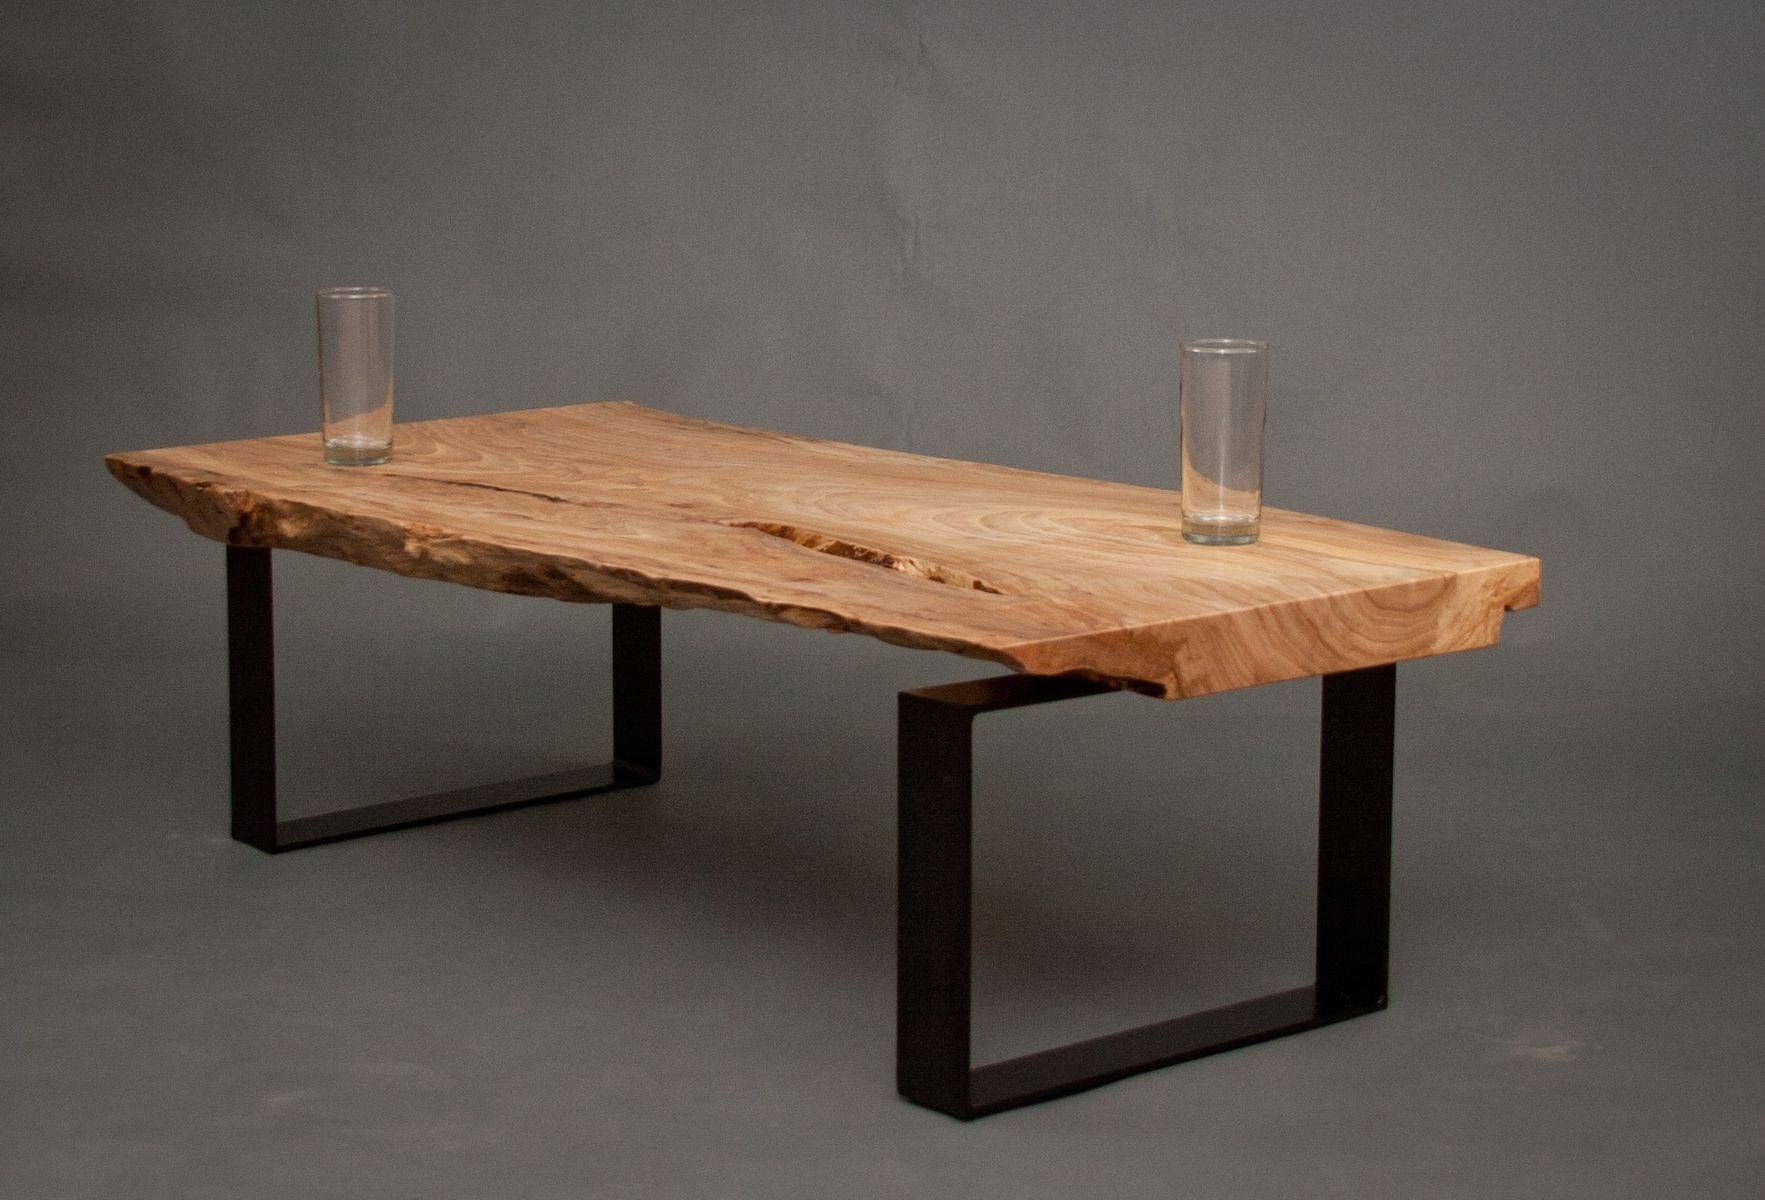 Live Edge Coffee Tables | Natural Wood Slab Coffee Tables throughout Live Edge Coffee Tables (Image 11 of 15)